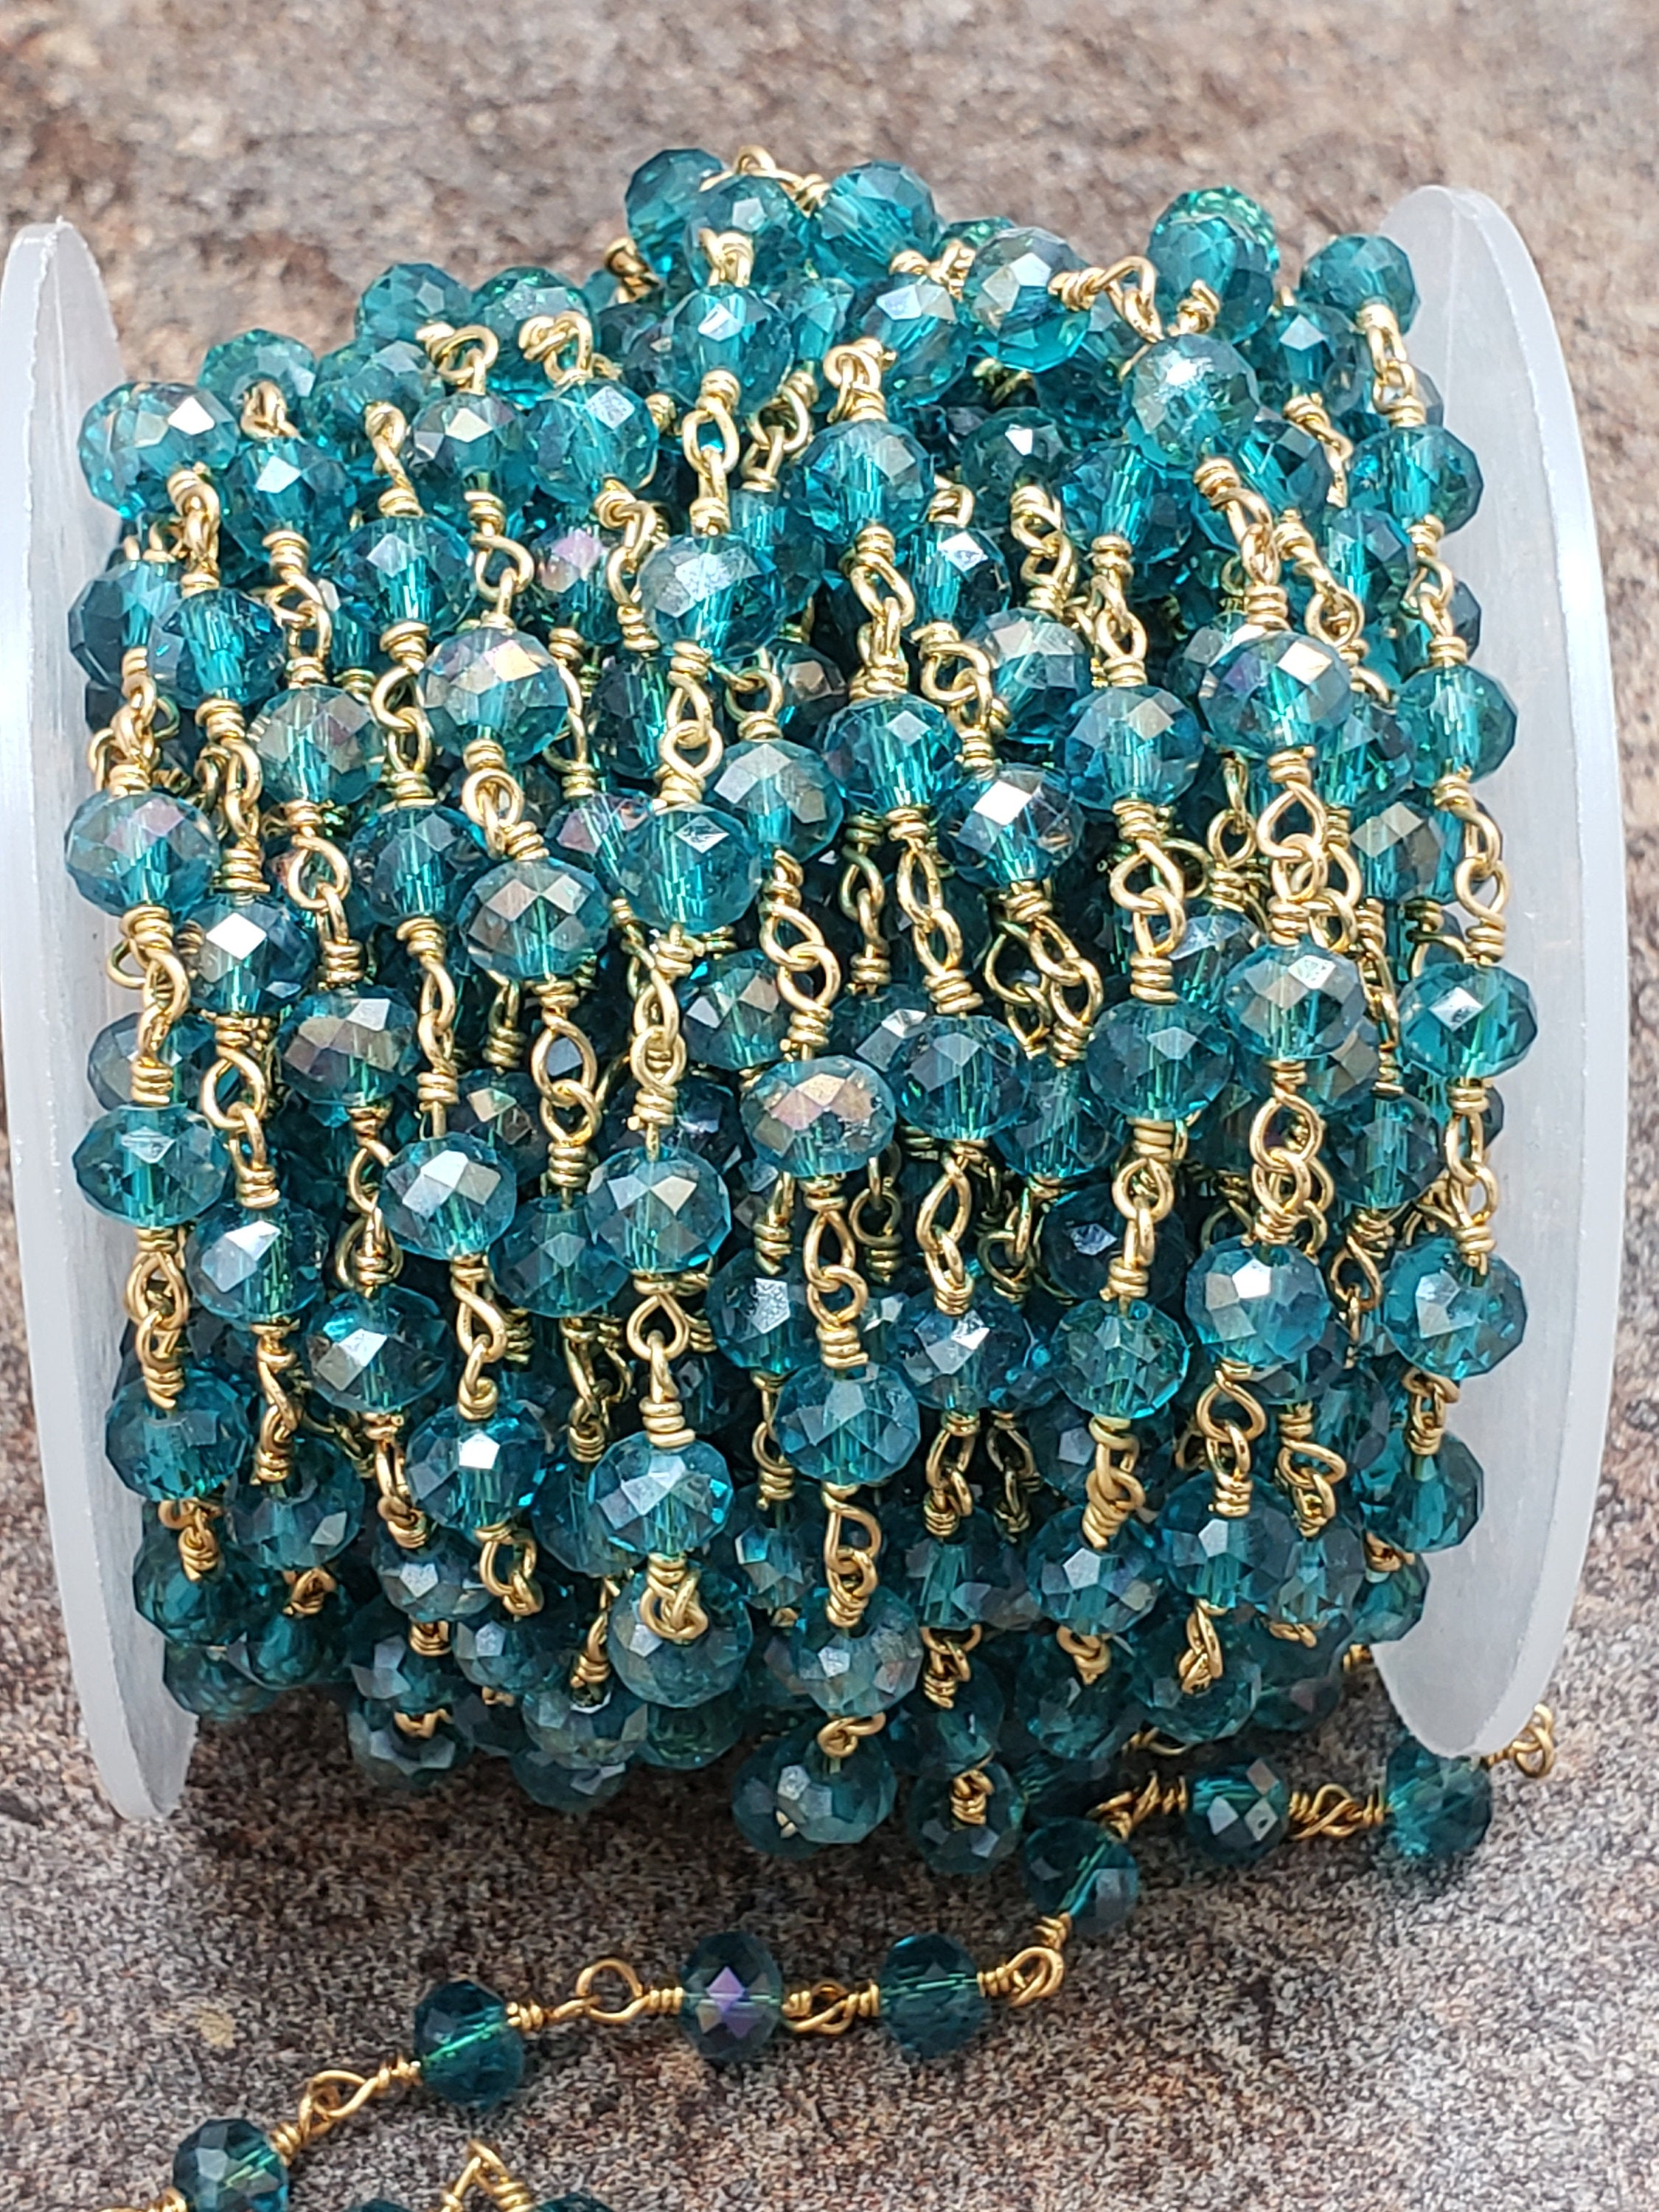 3 foot length of 4mm or 5.5mm London Blue Hydroquartz Rosary Chain, Brass w/Gold Plating